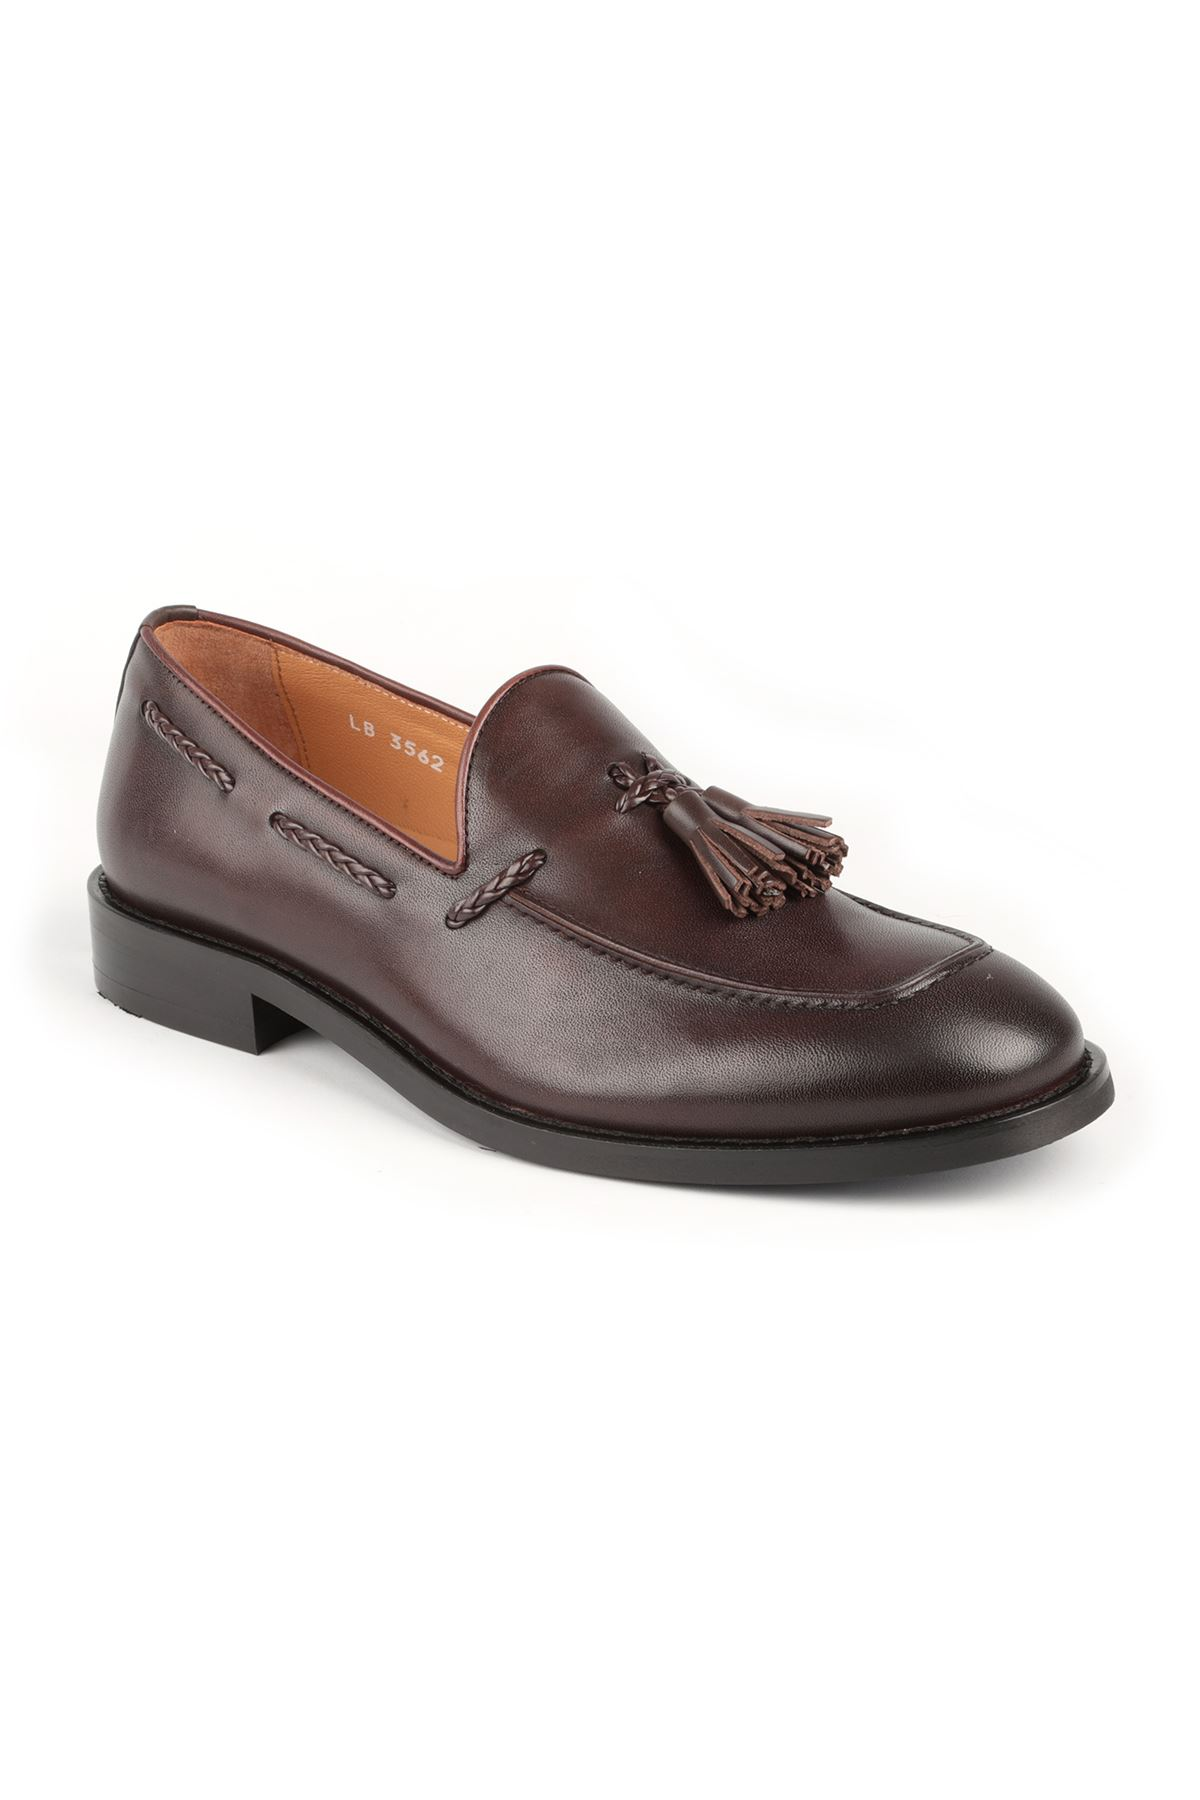 Libero L3562 Brown Loafer Casual Shoes